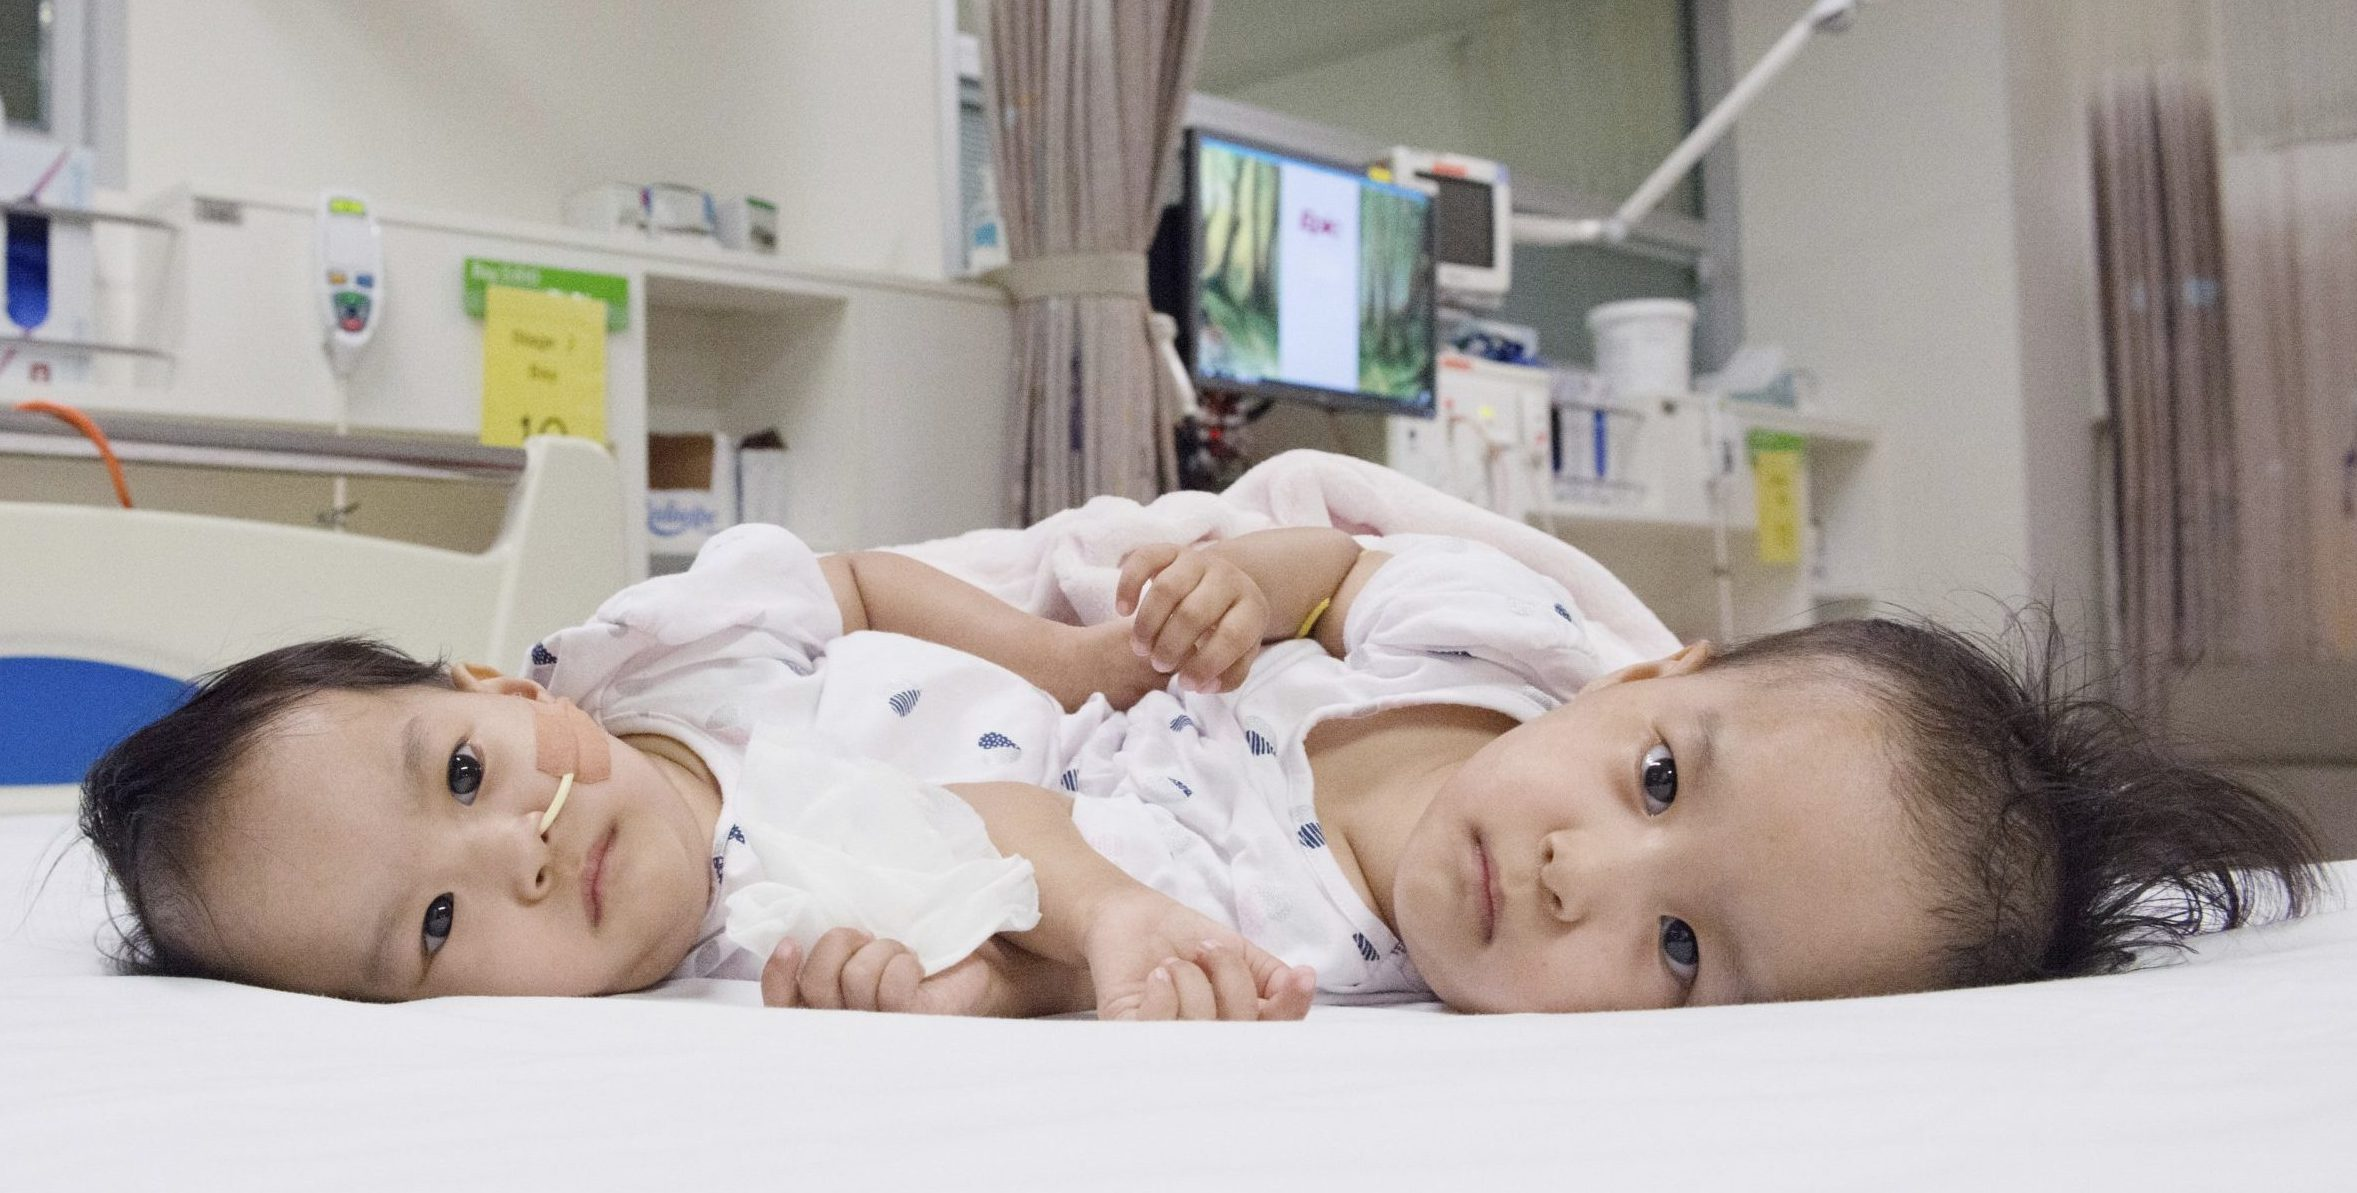 This photo provided by RCH Melbourne Creative Studio, shows the 15-month-old girls before surgery at the Royal Children's Hospital Melbourne, Australia Friday, Nov. 9, 2018. Surgeons in Australia have begun separating the conjoined twins from Bhutan in a delicate operation expected to last most of the day. (RCH Melbourne Creative Studio via AP)